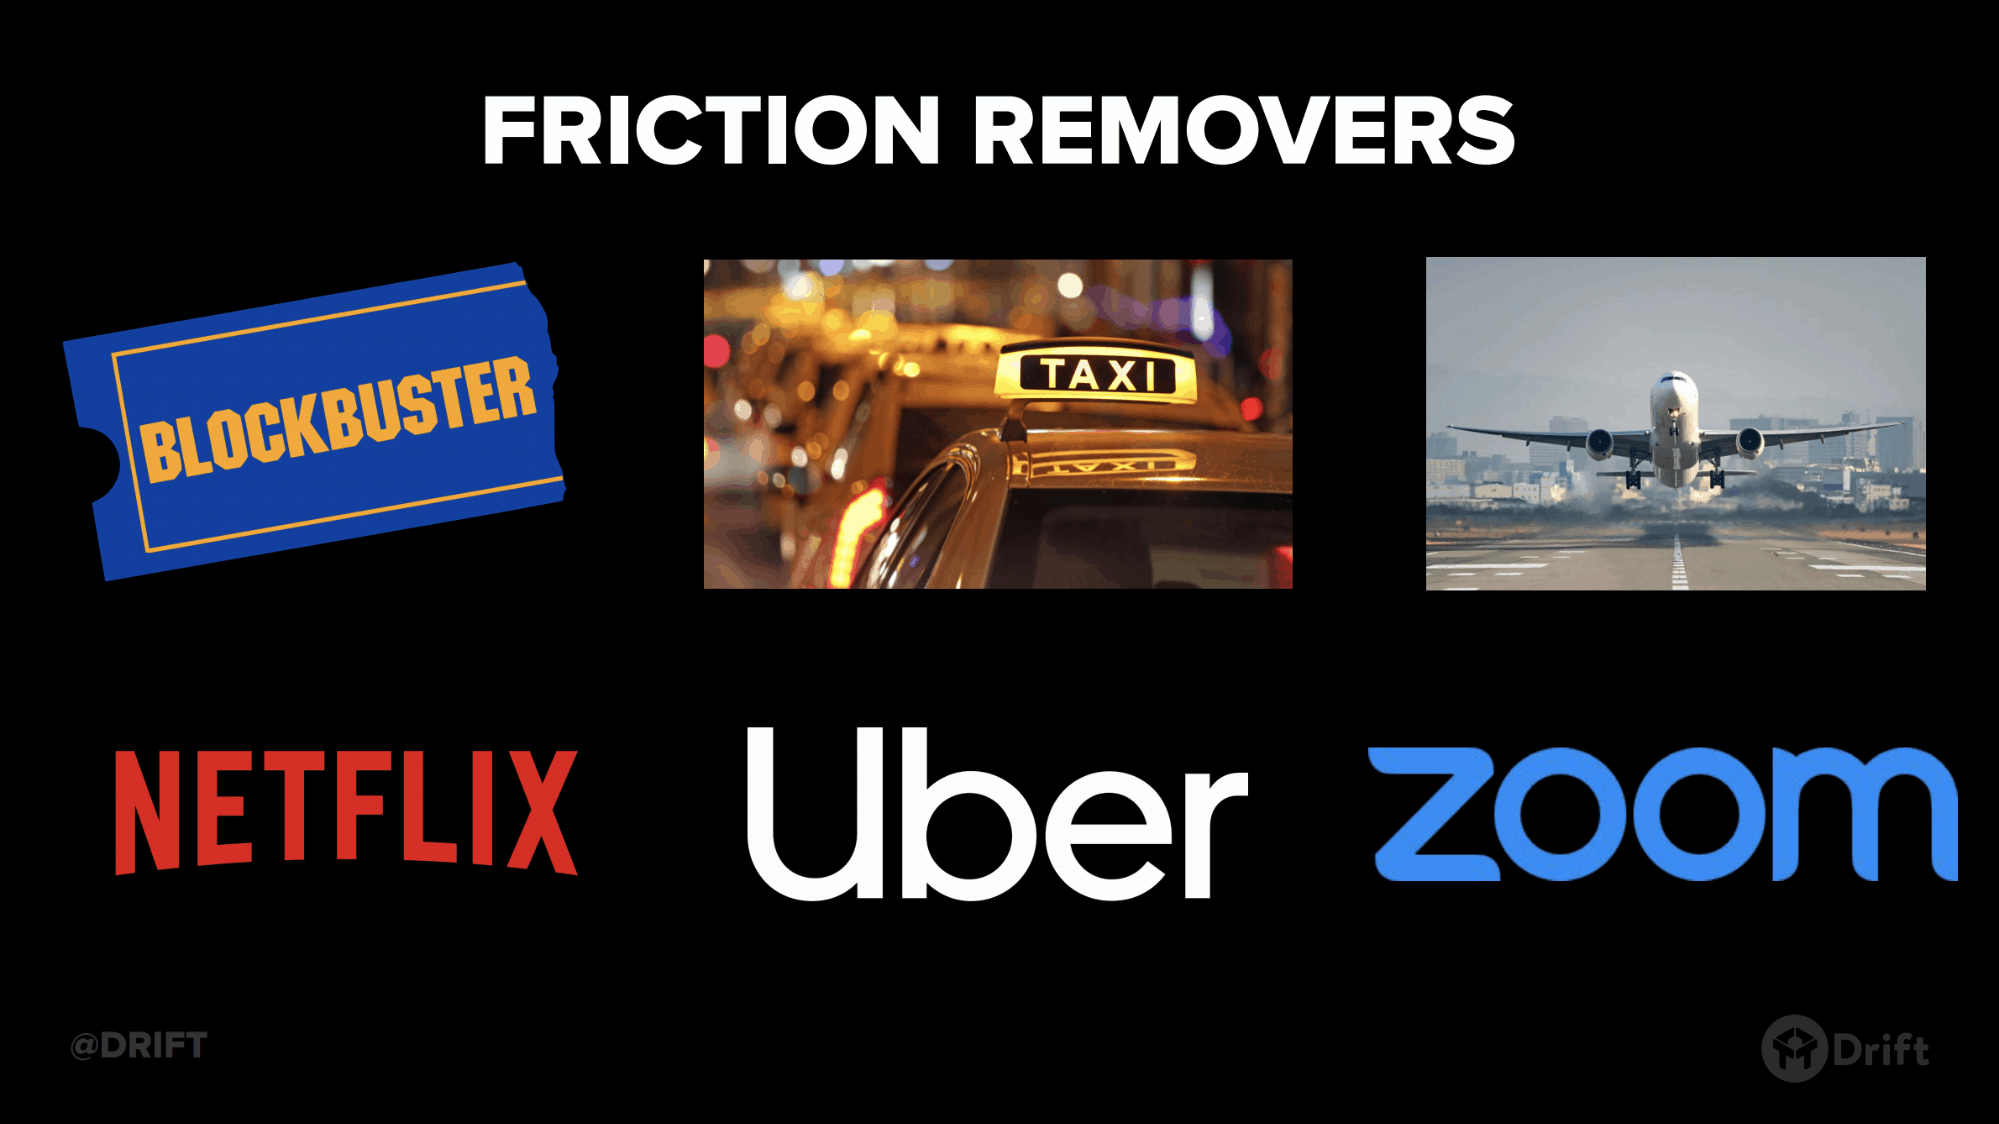 Friction Removers